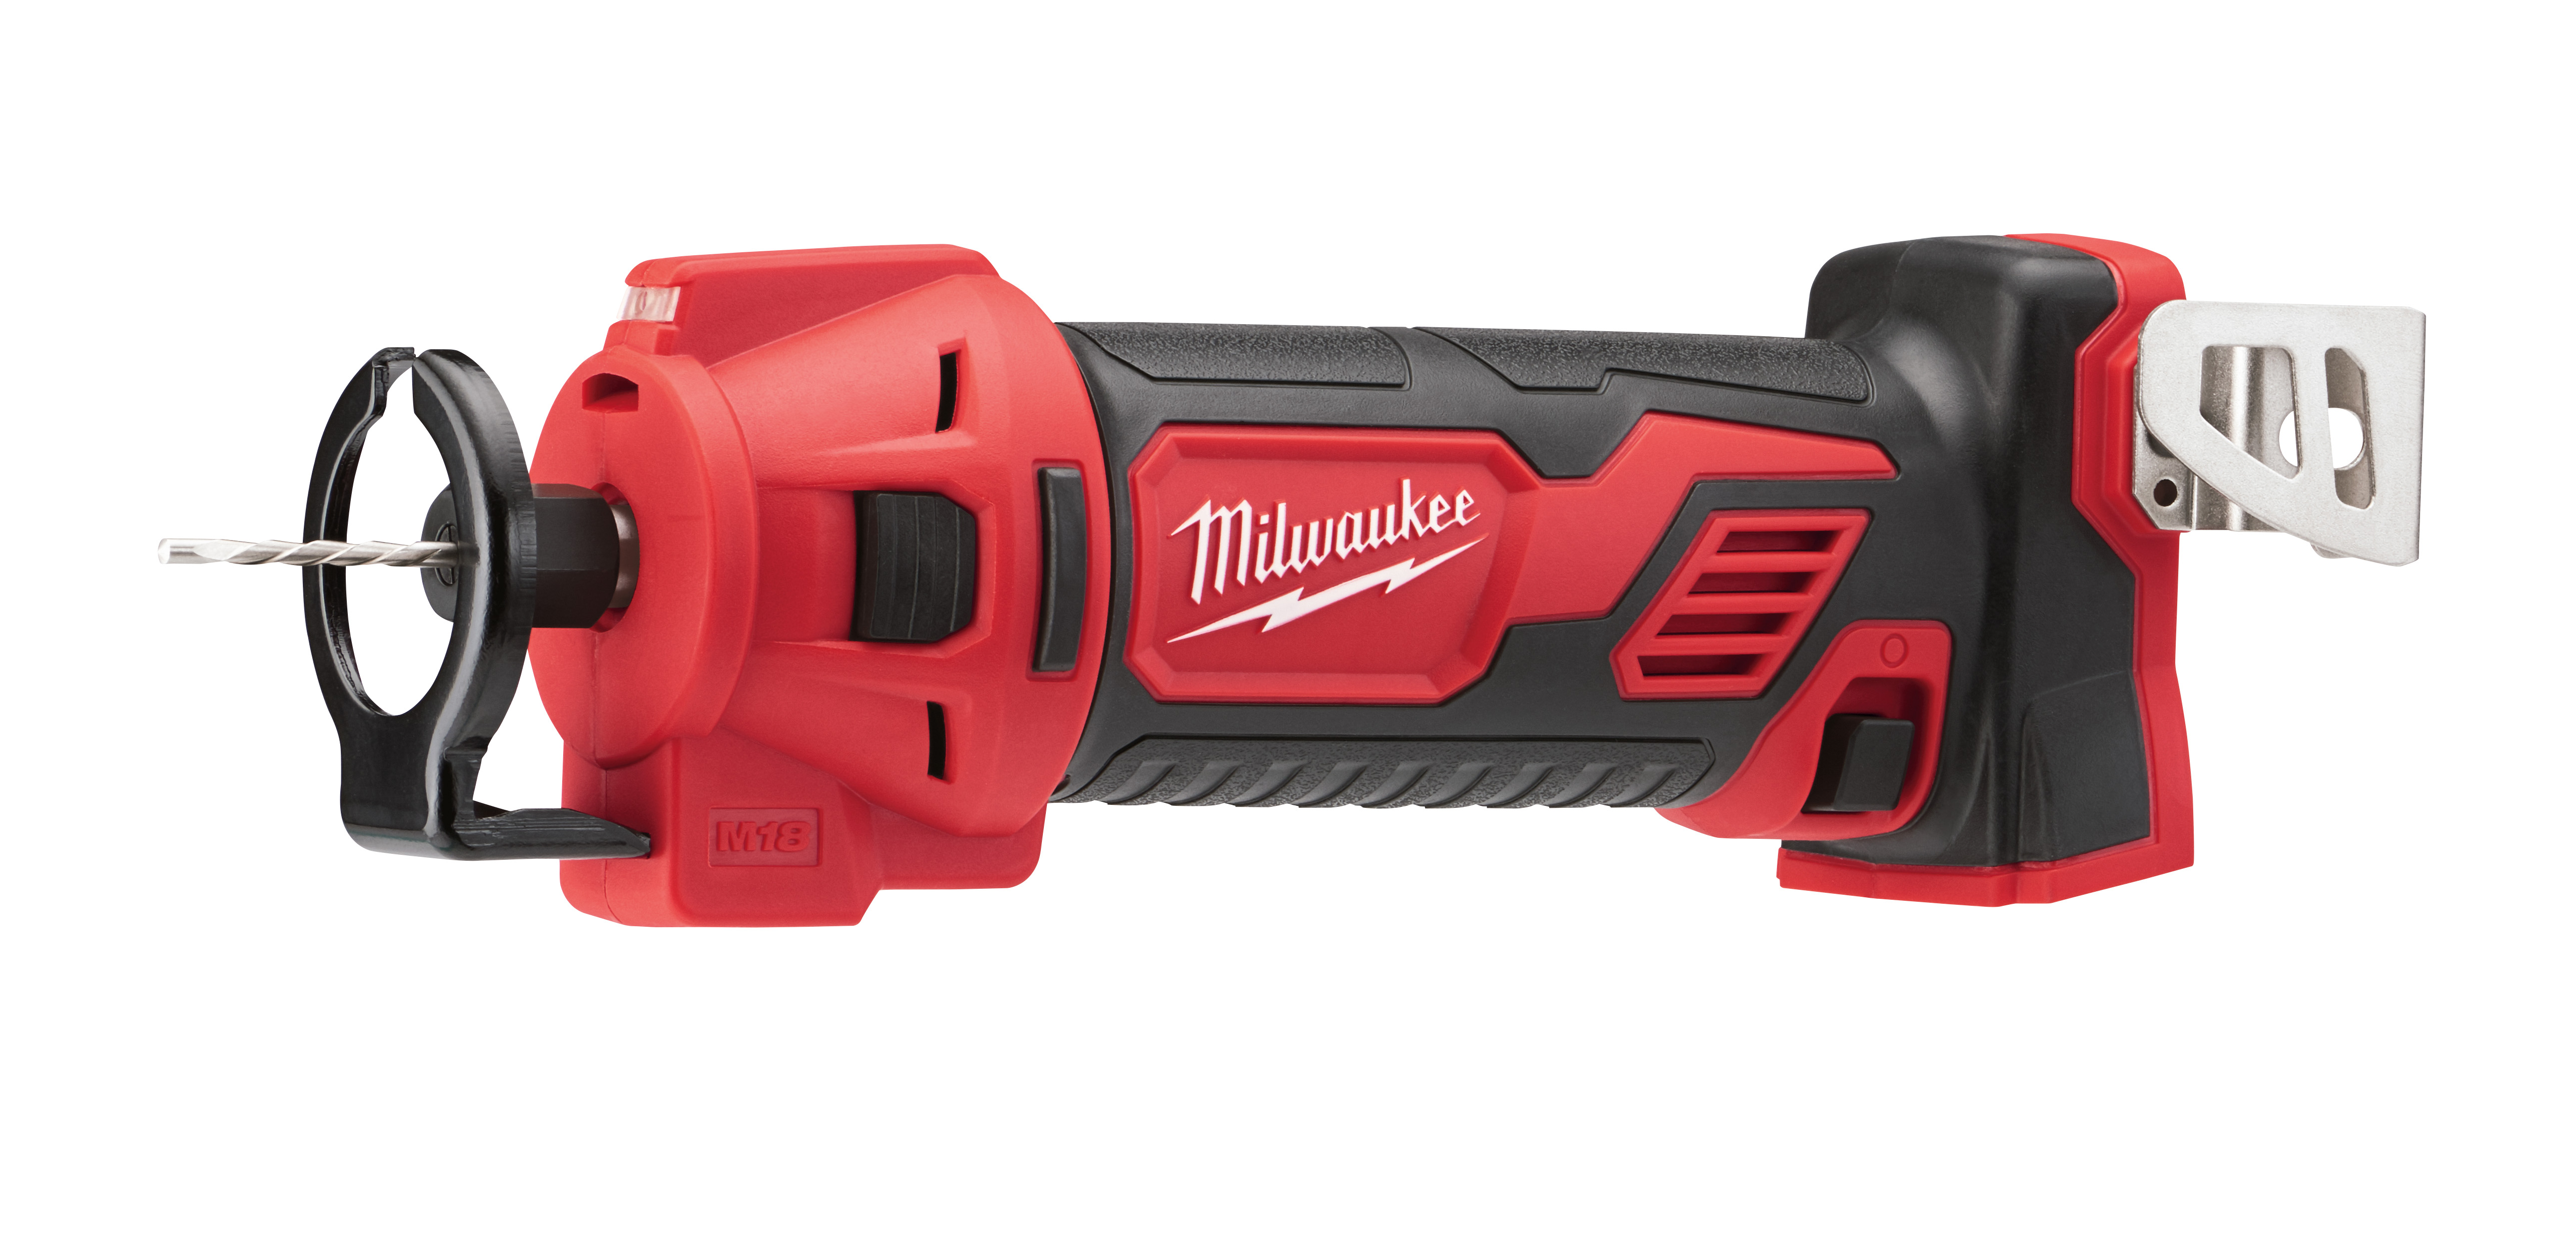 Milwaukee® M18™ 2627-20 Cordless Cut Out Tool, 3 Ah Lithium-Ion Battery, 18 VDC, 1/4 in, 1/8 in Collet